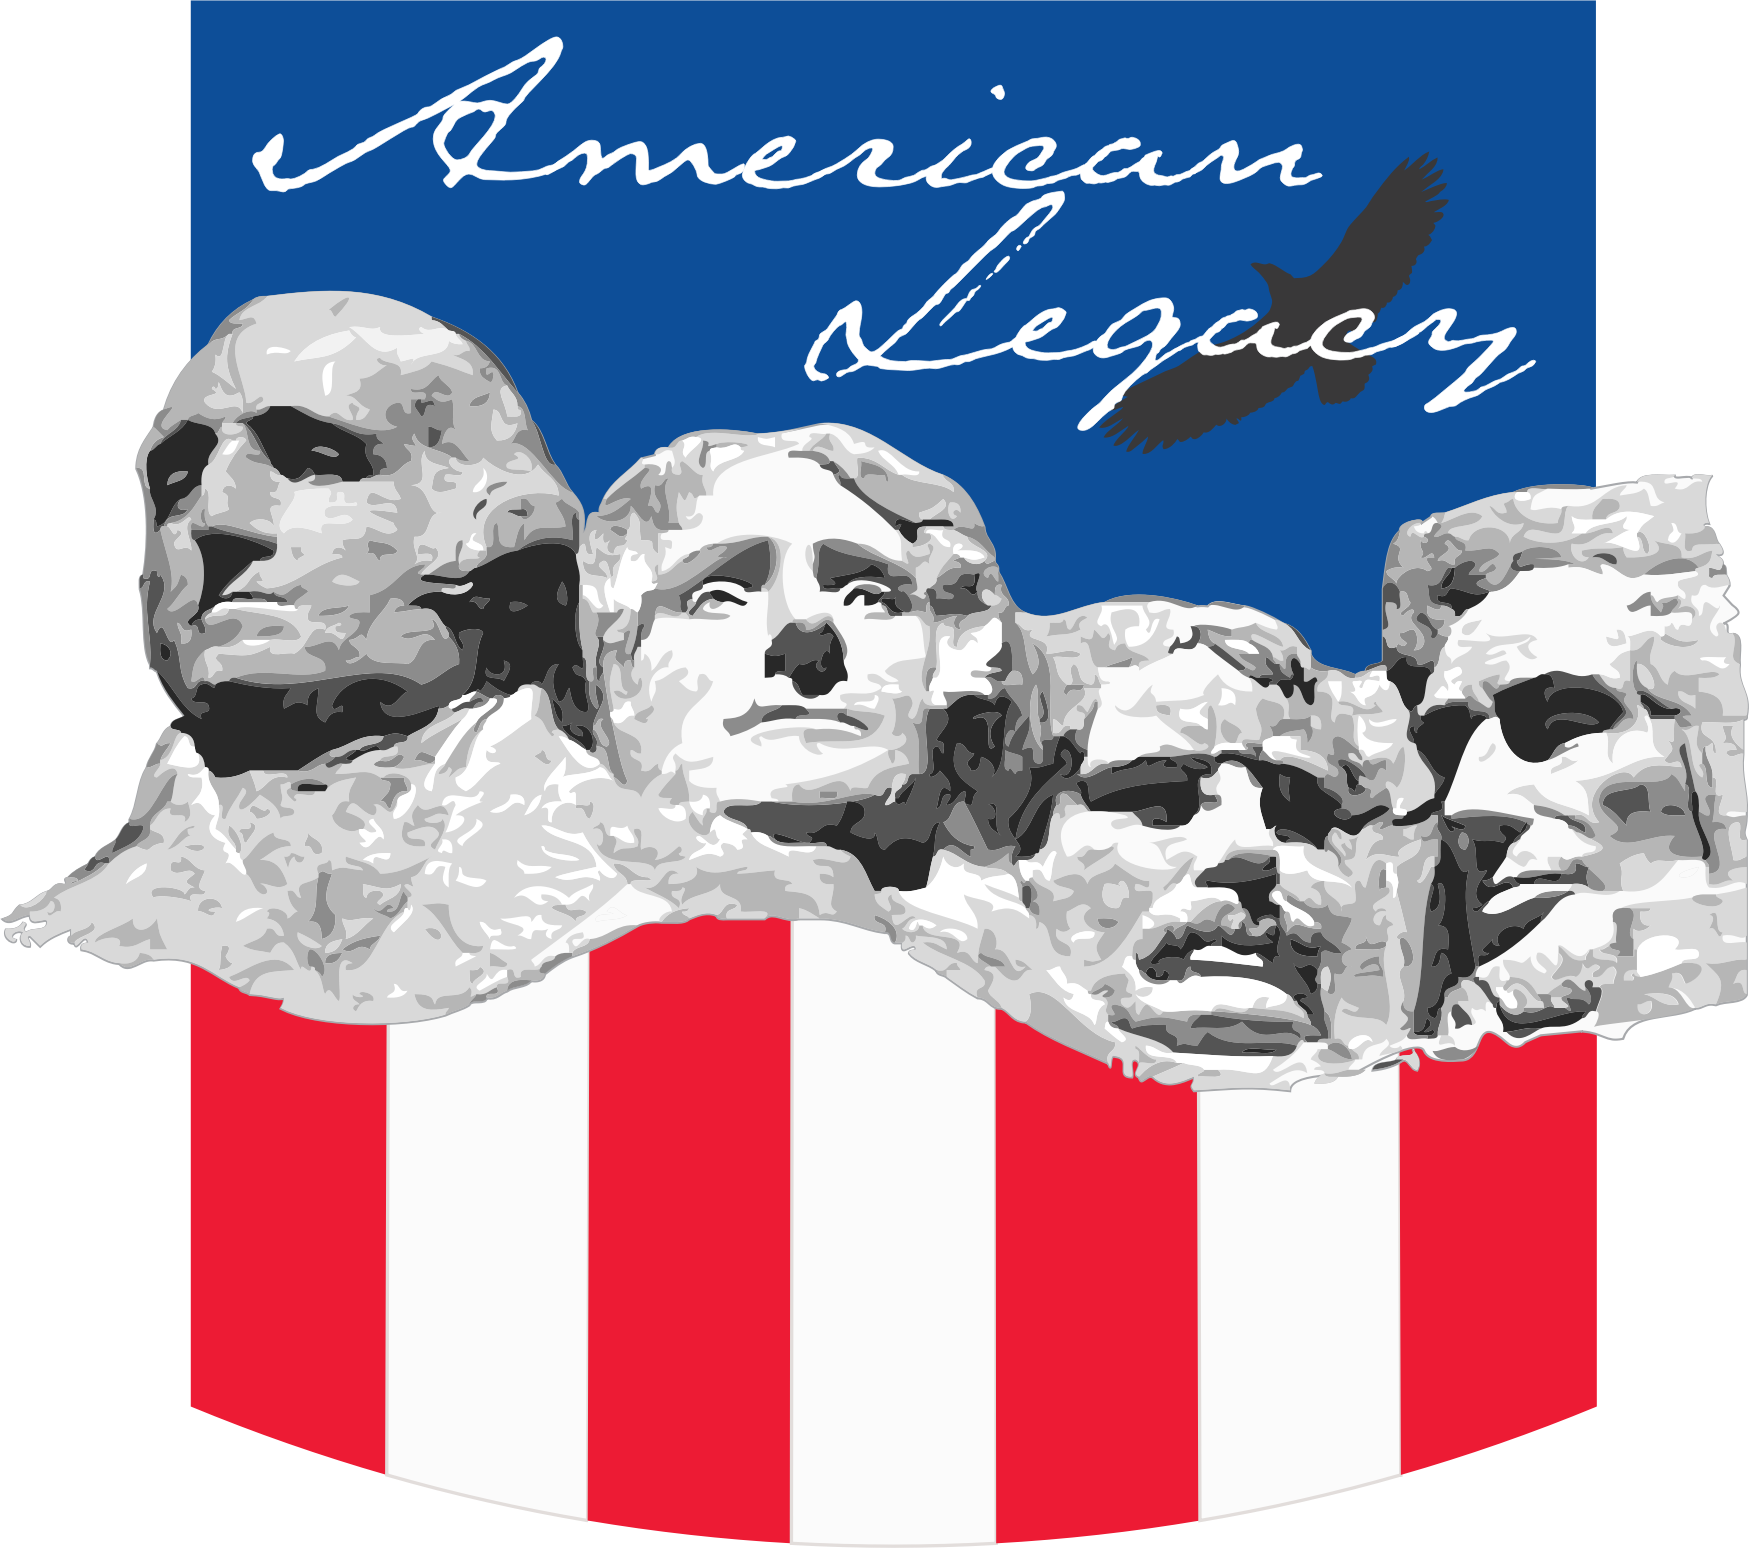 American legacy mt big. Mount rushmore clipart